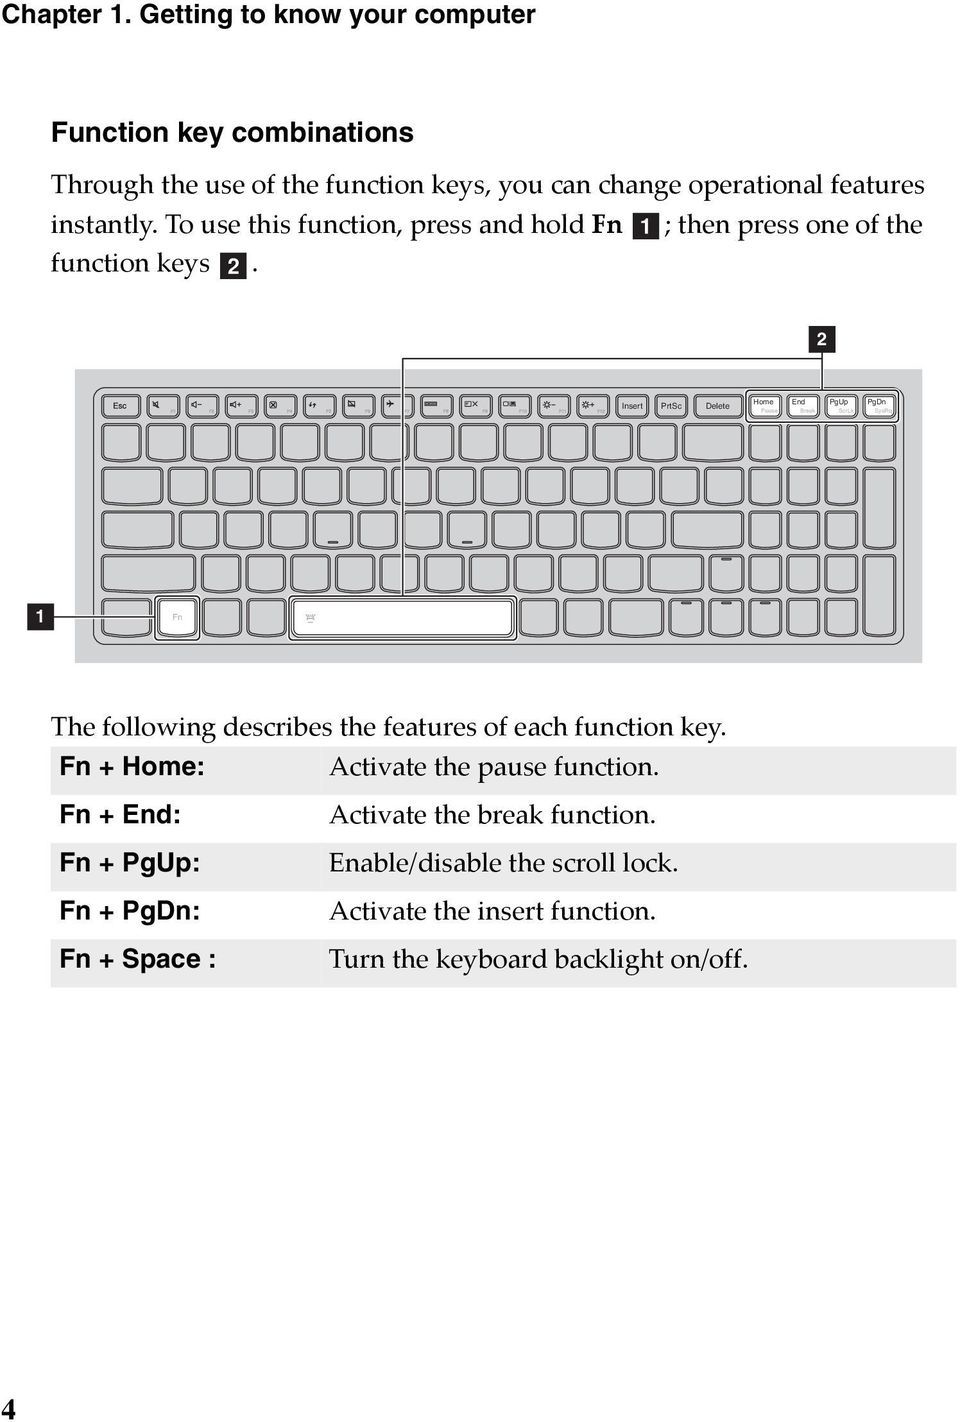 To use this function, press and hold Fn a; then press one of the function keys b.